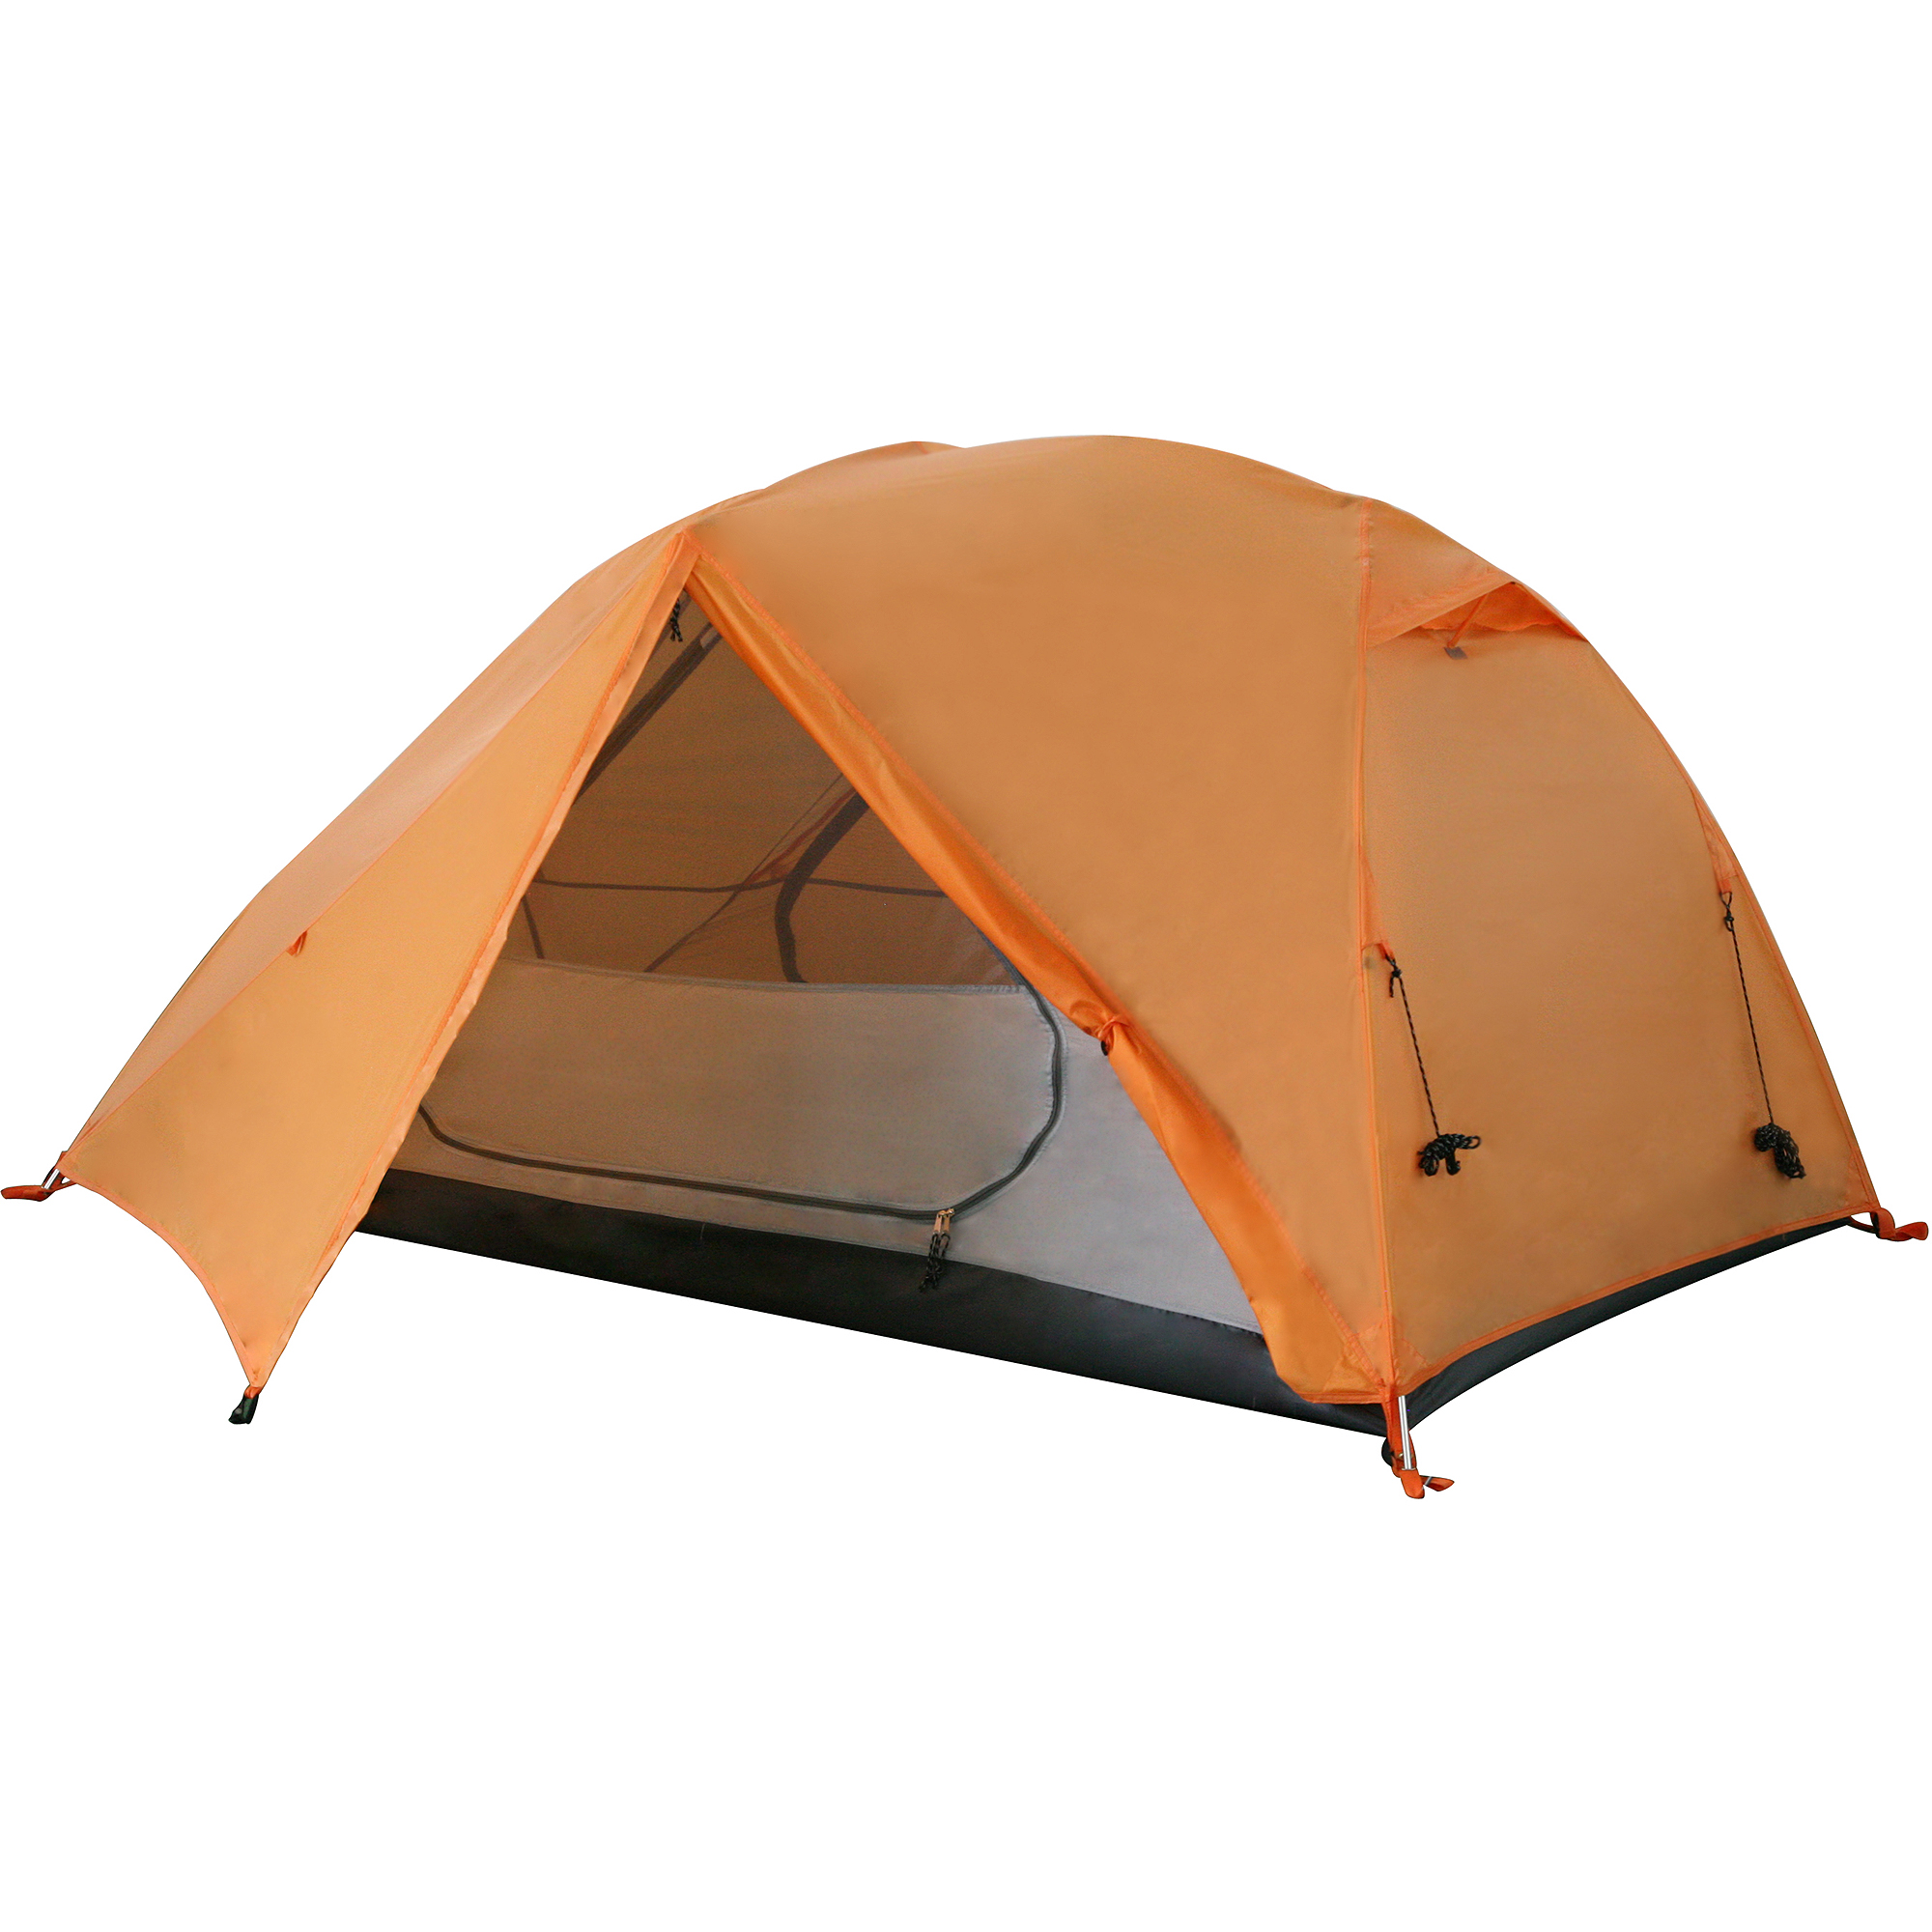 Ozark Trail Lightweight Aluminum Frame Backpacking Tent, Sleeps 2